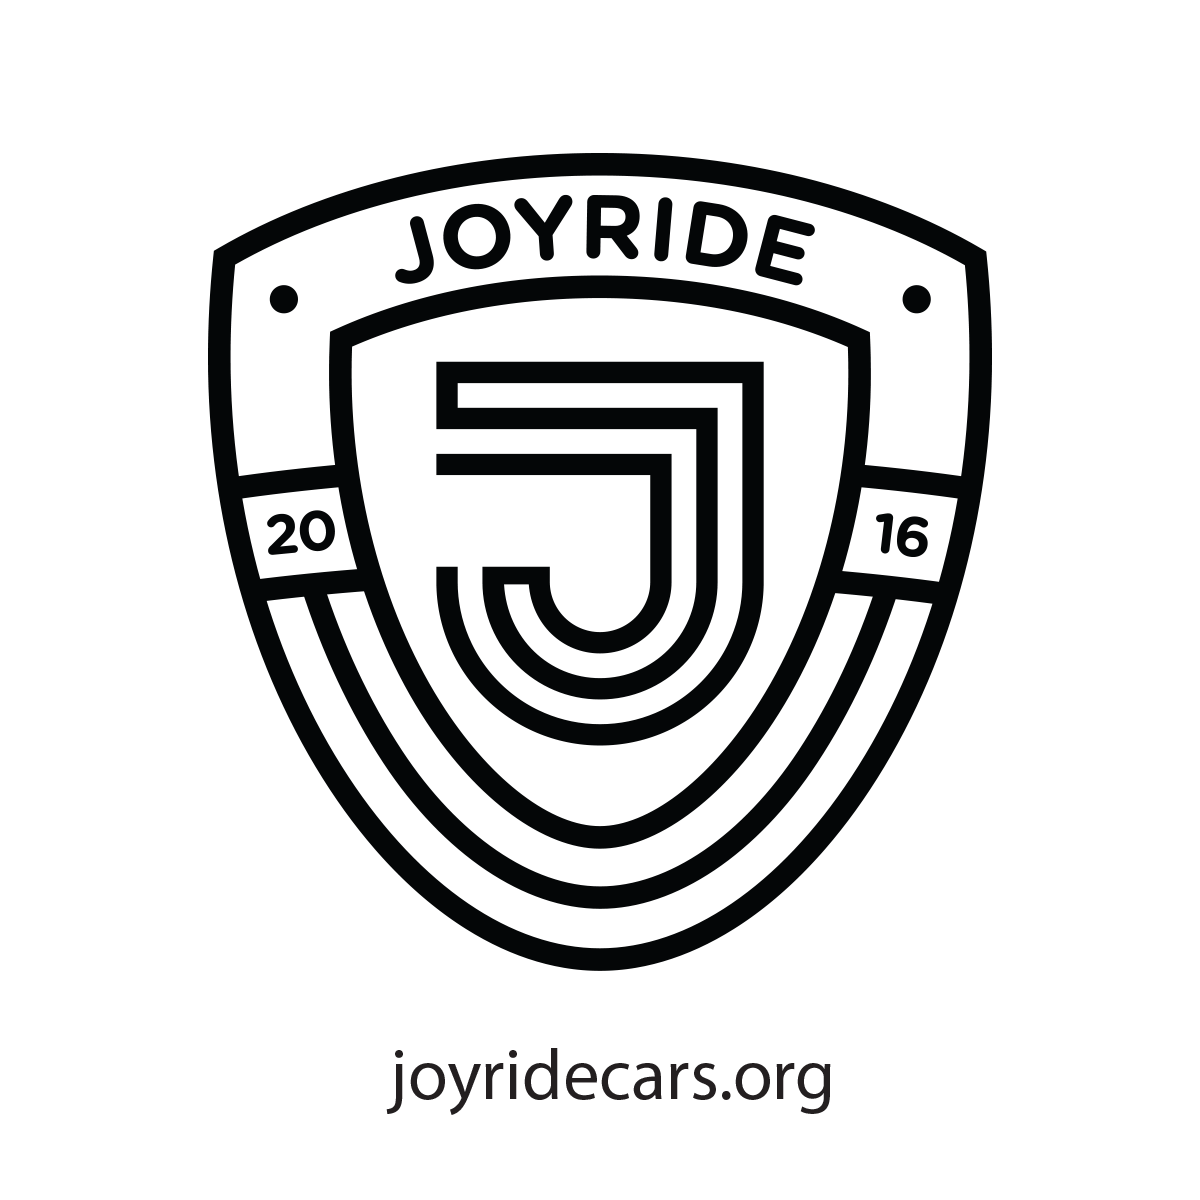 JoyRide Cars - Kids. Cars. SmilesJoyRide caters exclusively to kids with special needs attracting high-end and one-of-a-kind cars to put smiles on the faces of its kids, volunteers and car owners.